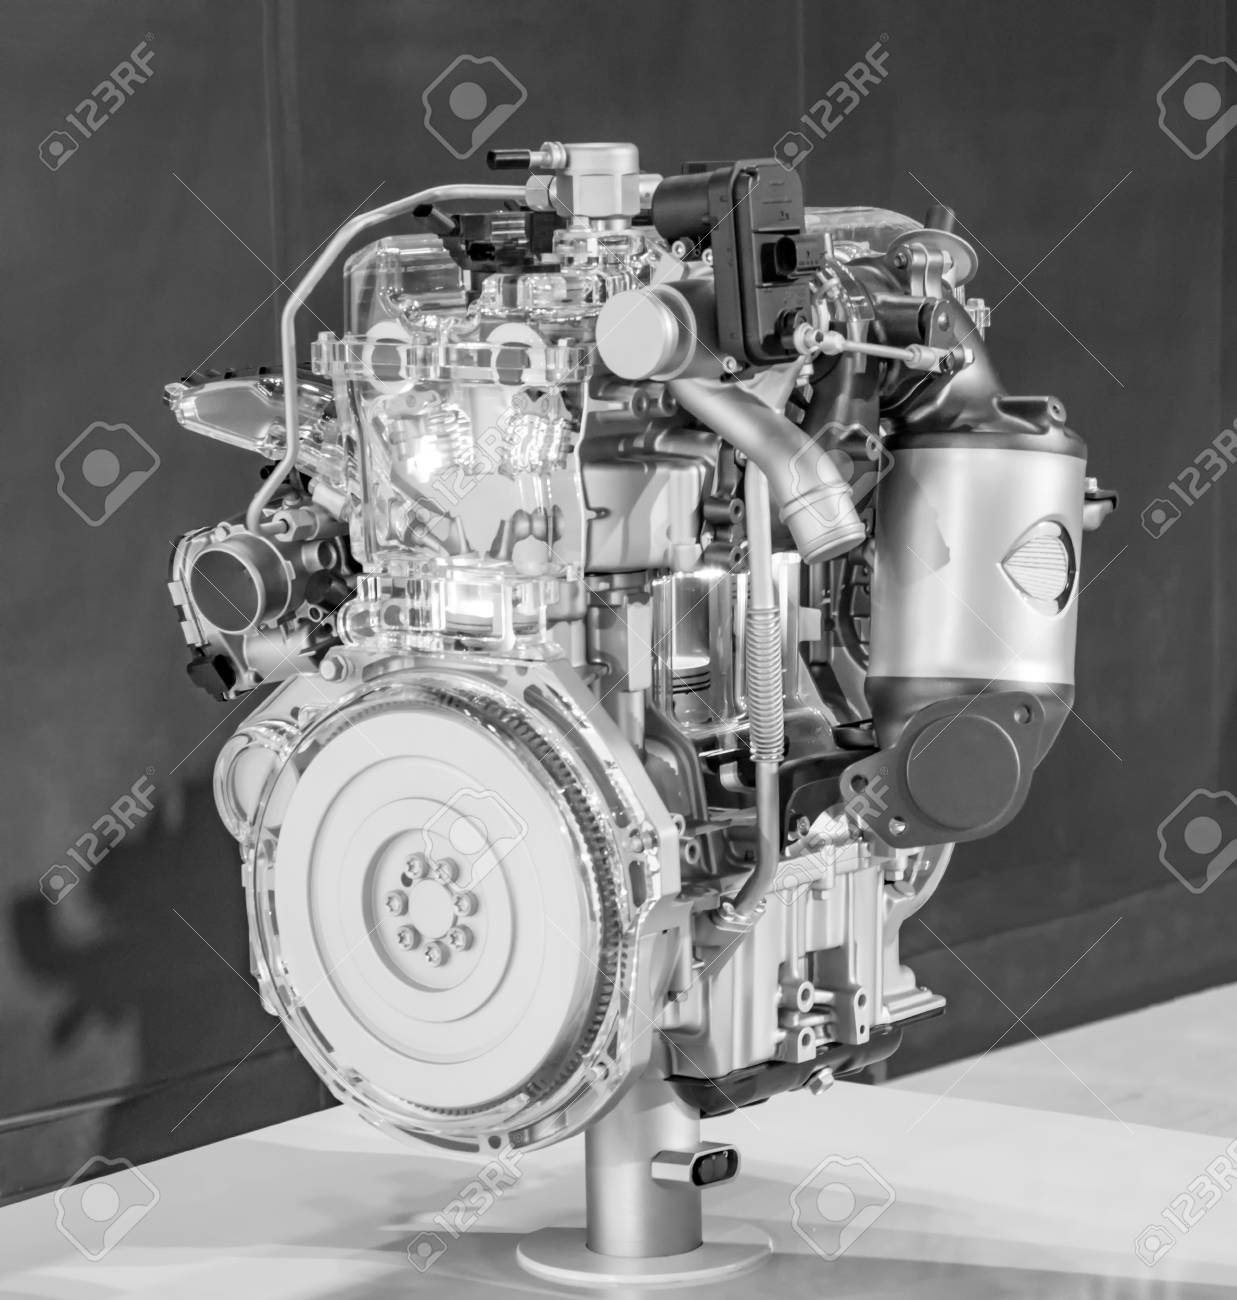 Car Engine On Display With Shiny Parts. Stock Photo, Picture And ...